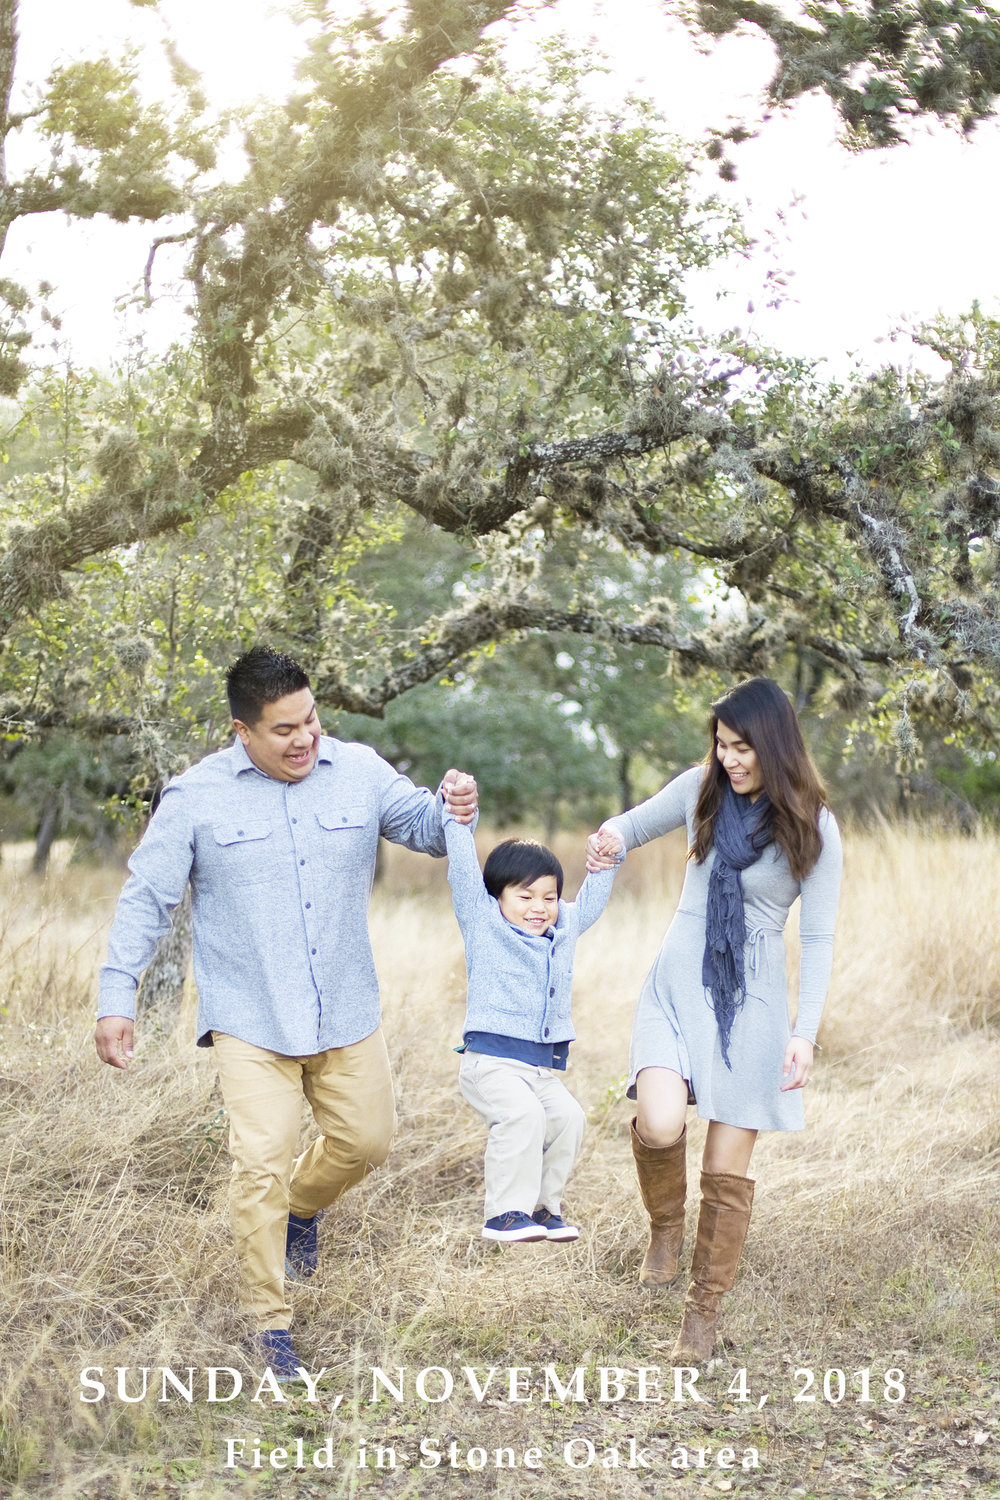 San Antonio family engagement wedding maternity anniversary photographer Texas hill country boerne photographer Cibolo canyon lake photographer family session family photos holiday photos family photographer fall 2018 November sessions mini sessions